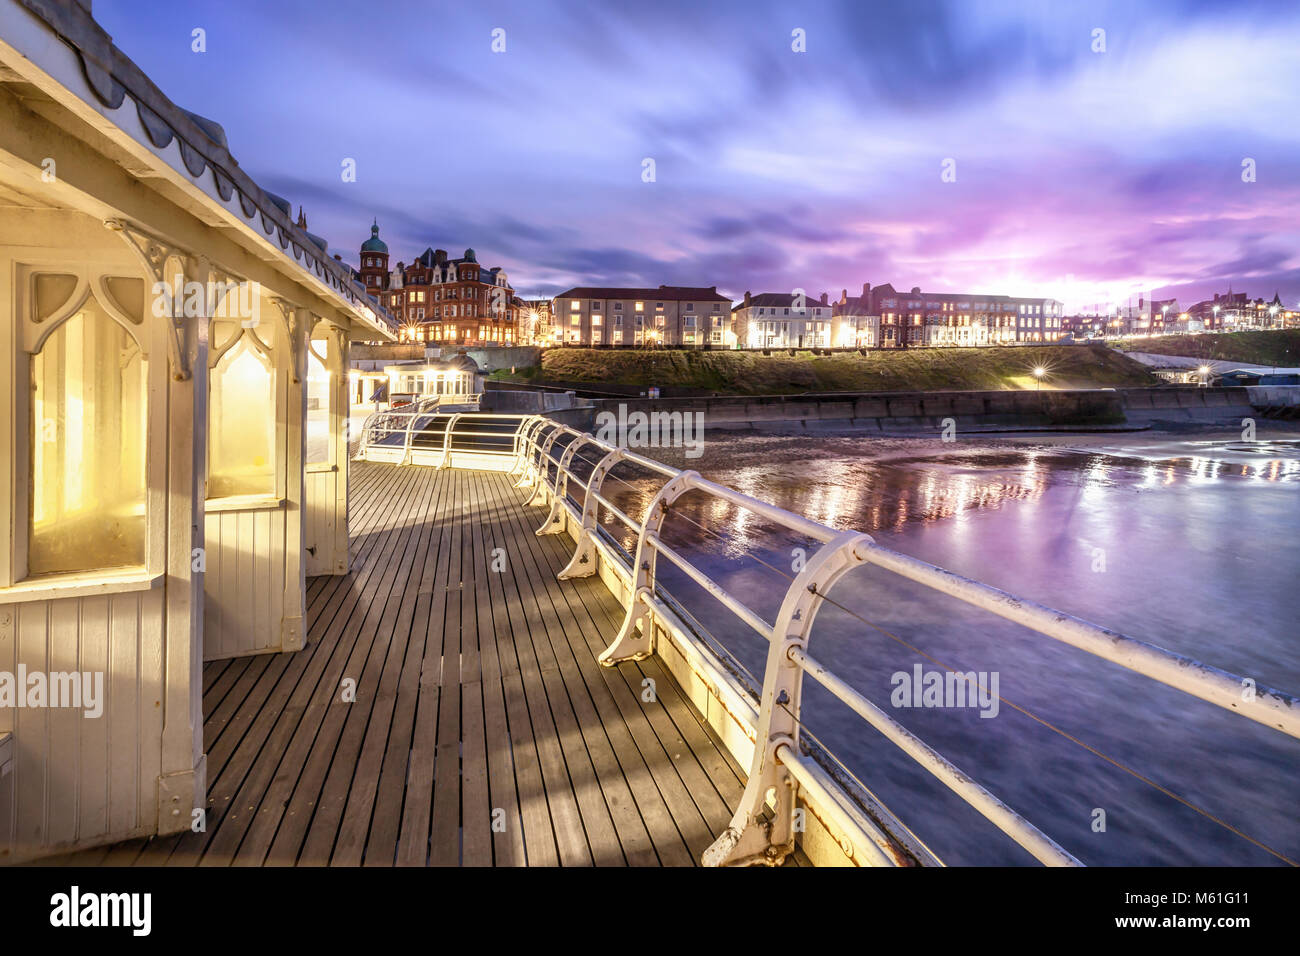 Cromer Pier Victorian Shelters - One of the greatest piers in England jutting out from Cromer town in Norfolk. The Stock Photo